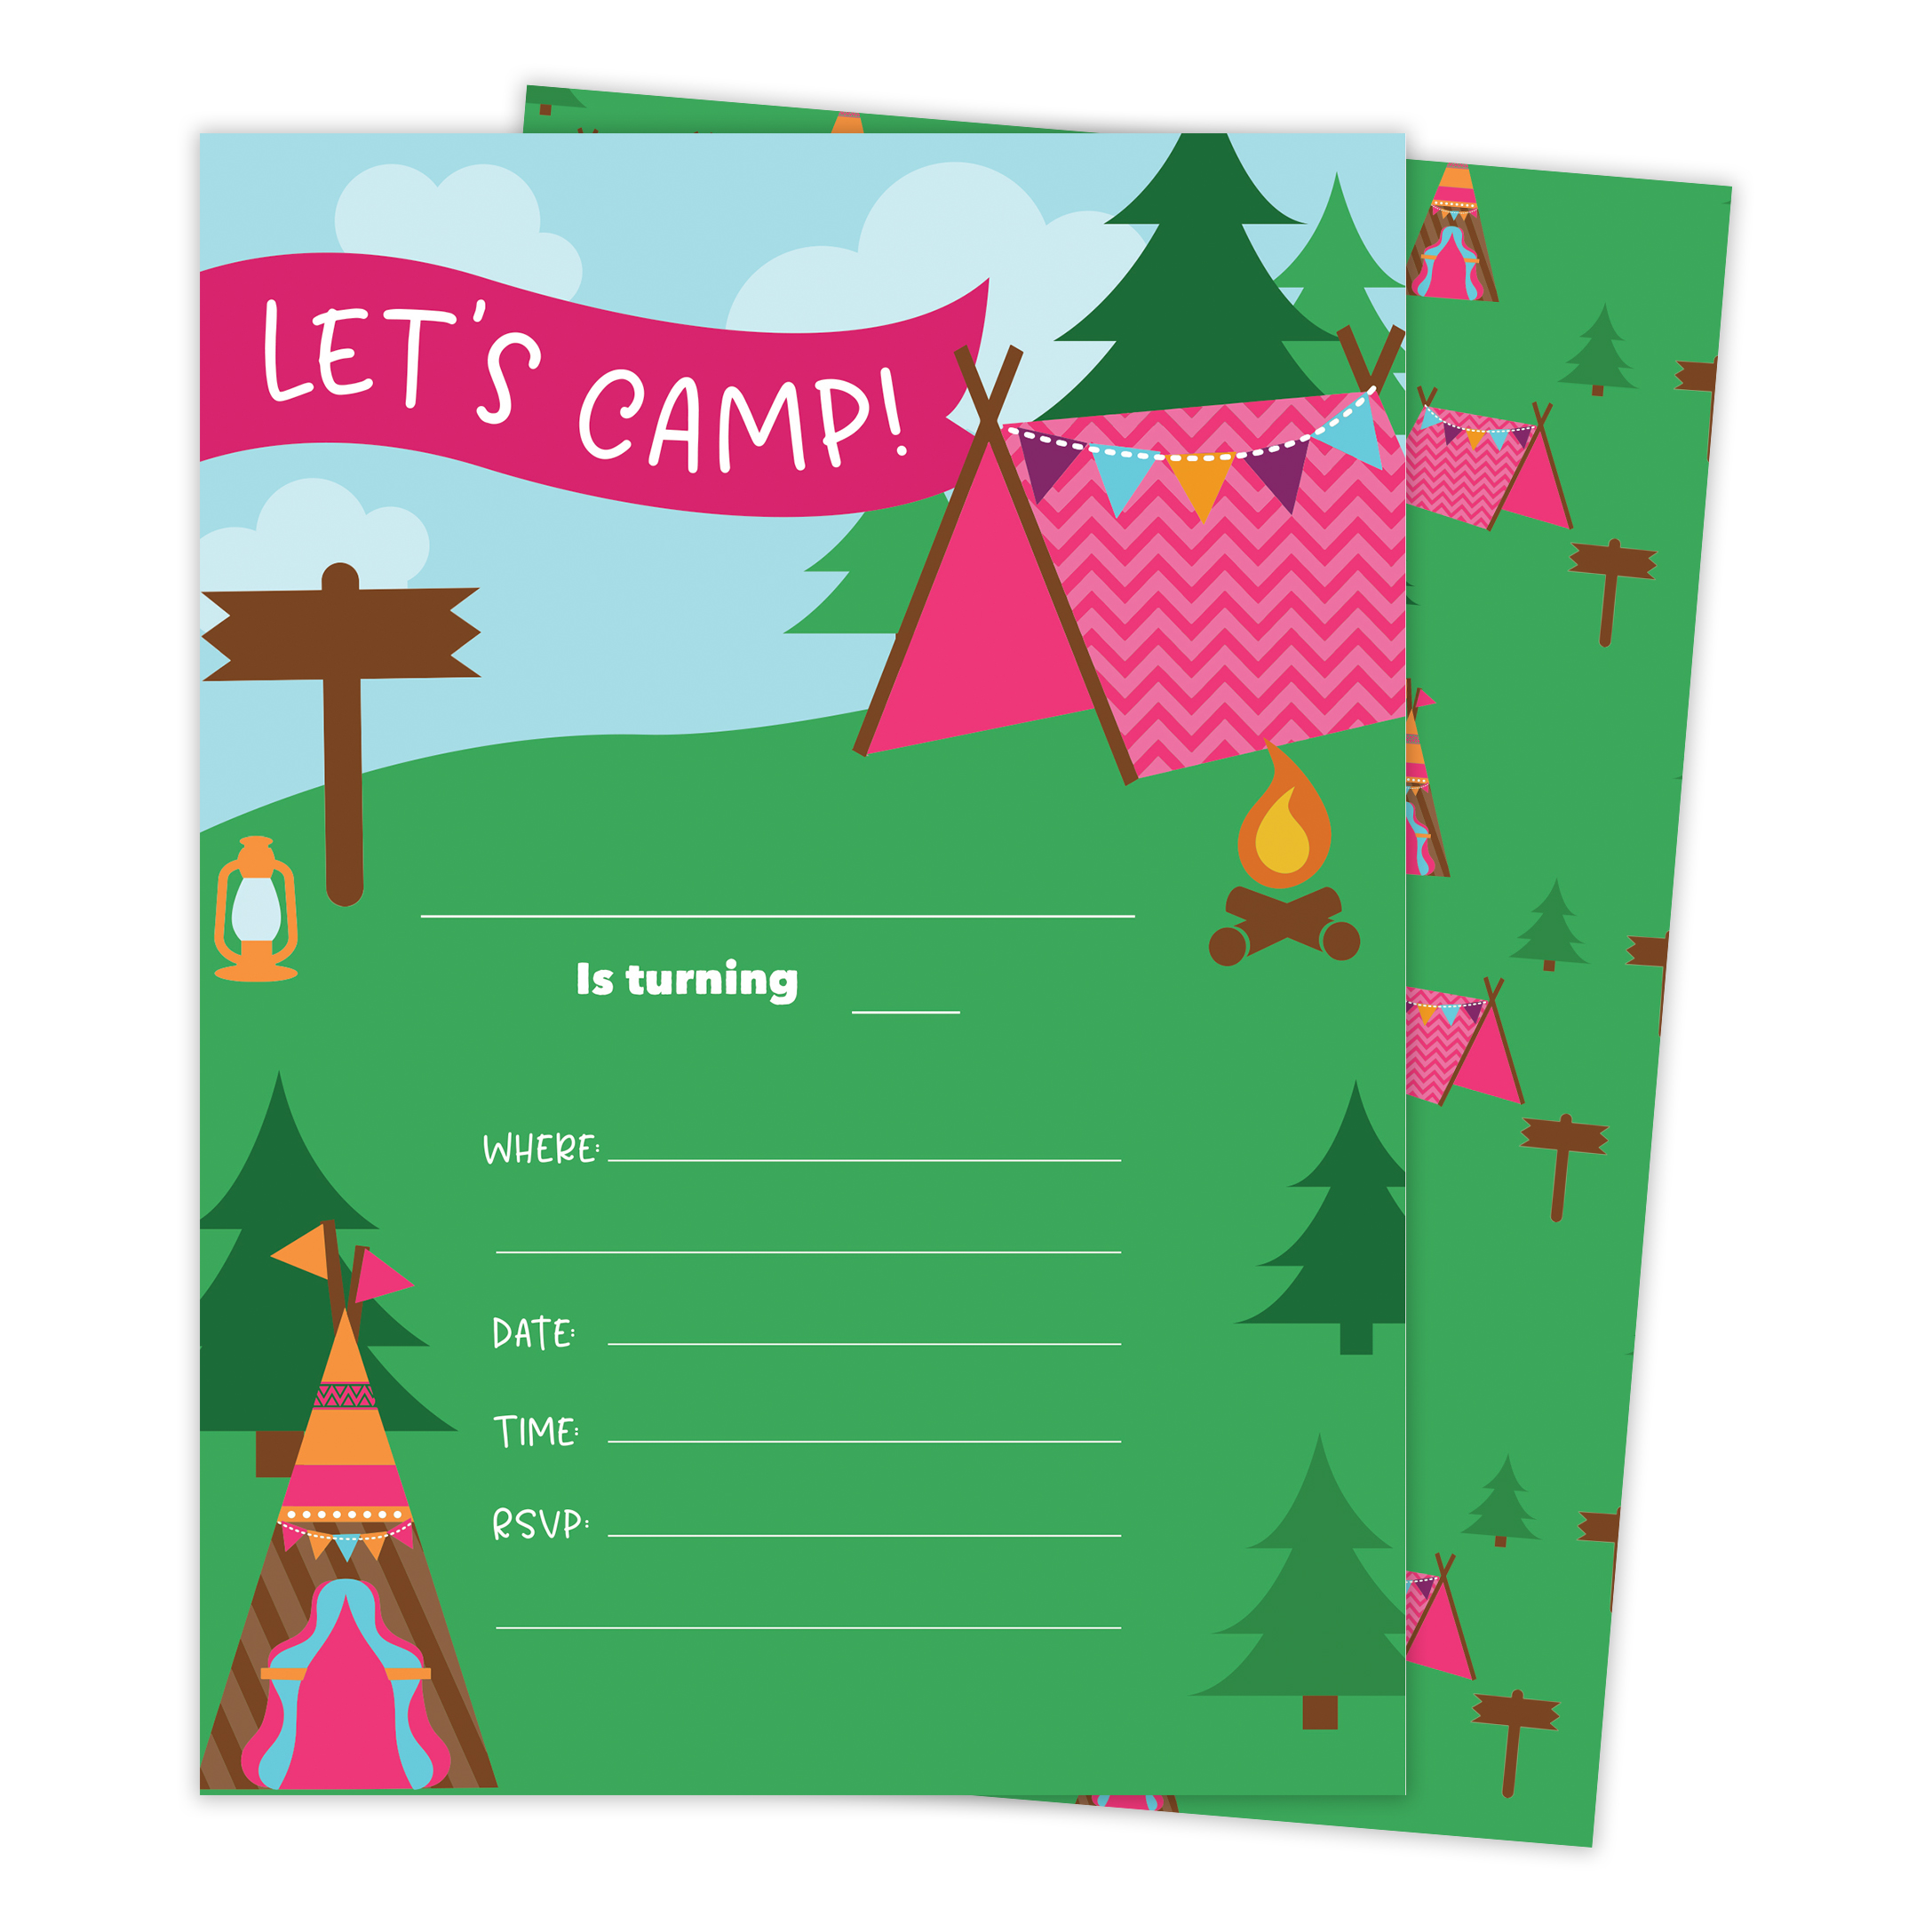 Camping Girls 3 Happy Birthday Invitations Invite Cards (25 Count) With Envelopes & Seal Stickers Vinyl Girls Kids Party